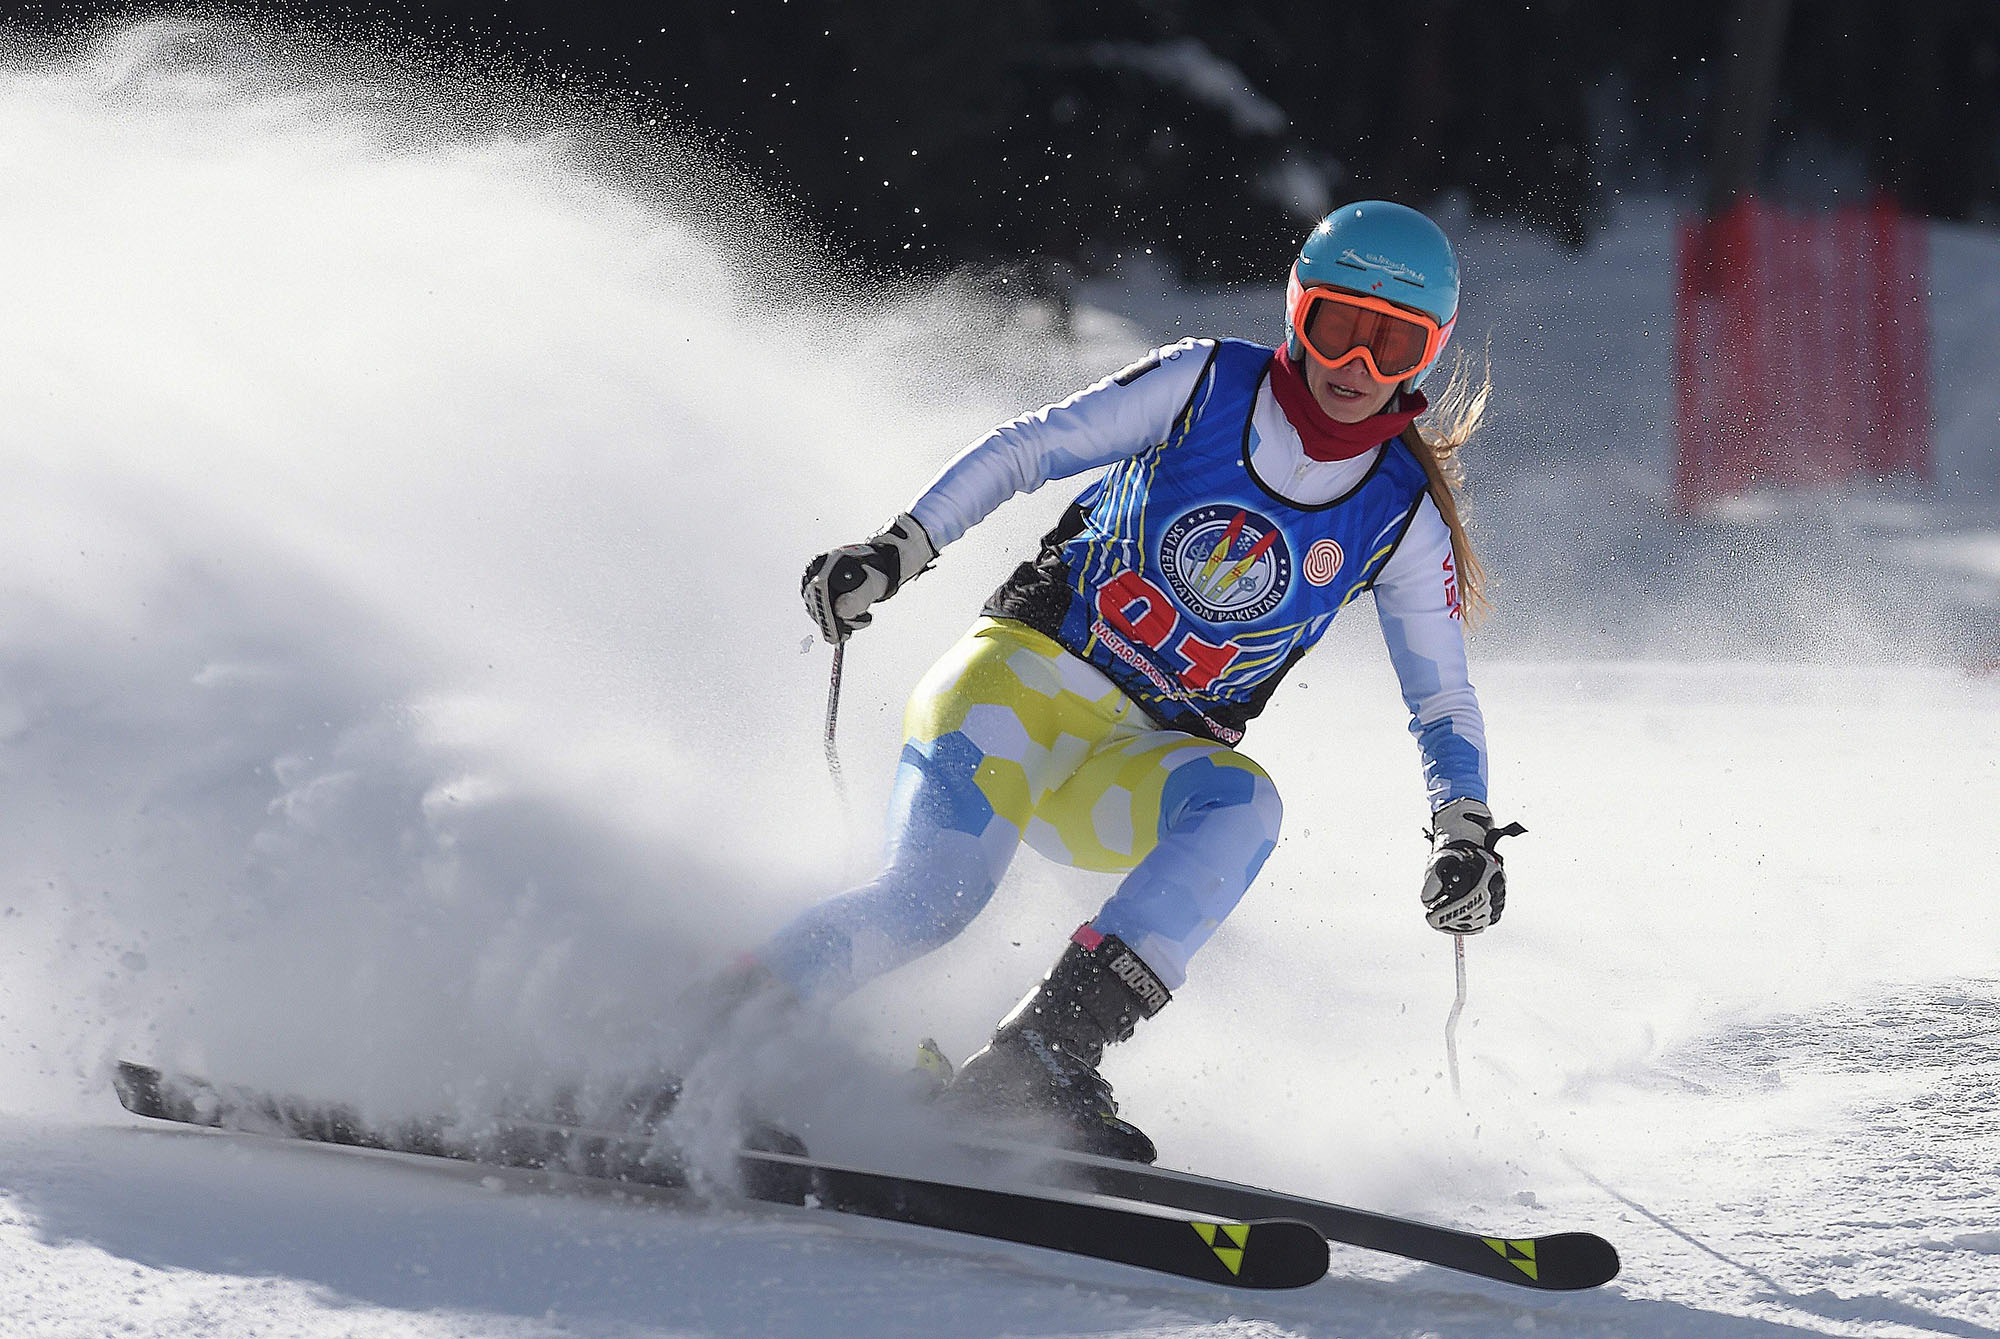 In this picture taken on January 29, 2019, Ukrainian skier Anastasia Gorbunova takes part in the CAS Karakoram International Alpine Ski Cup, at the Pakistan Air Force-owned and operated Naltar Ski Resort, some 25km north of Gilgit in Pakistan's remote mountainous north. Photo AFP